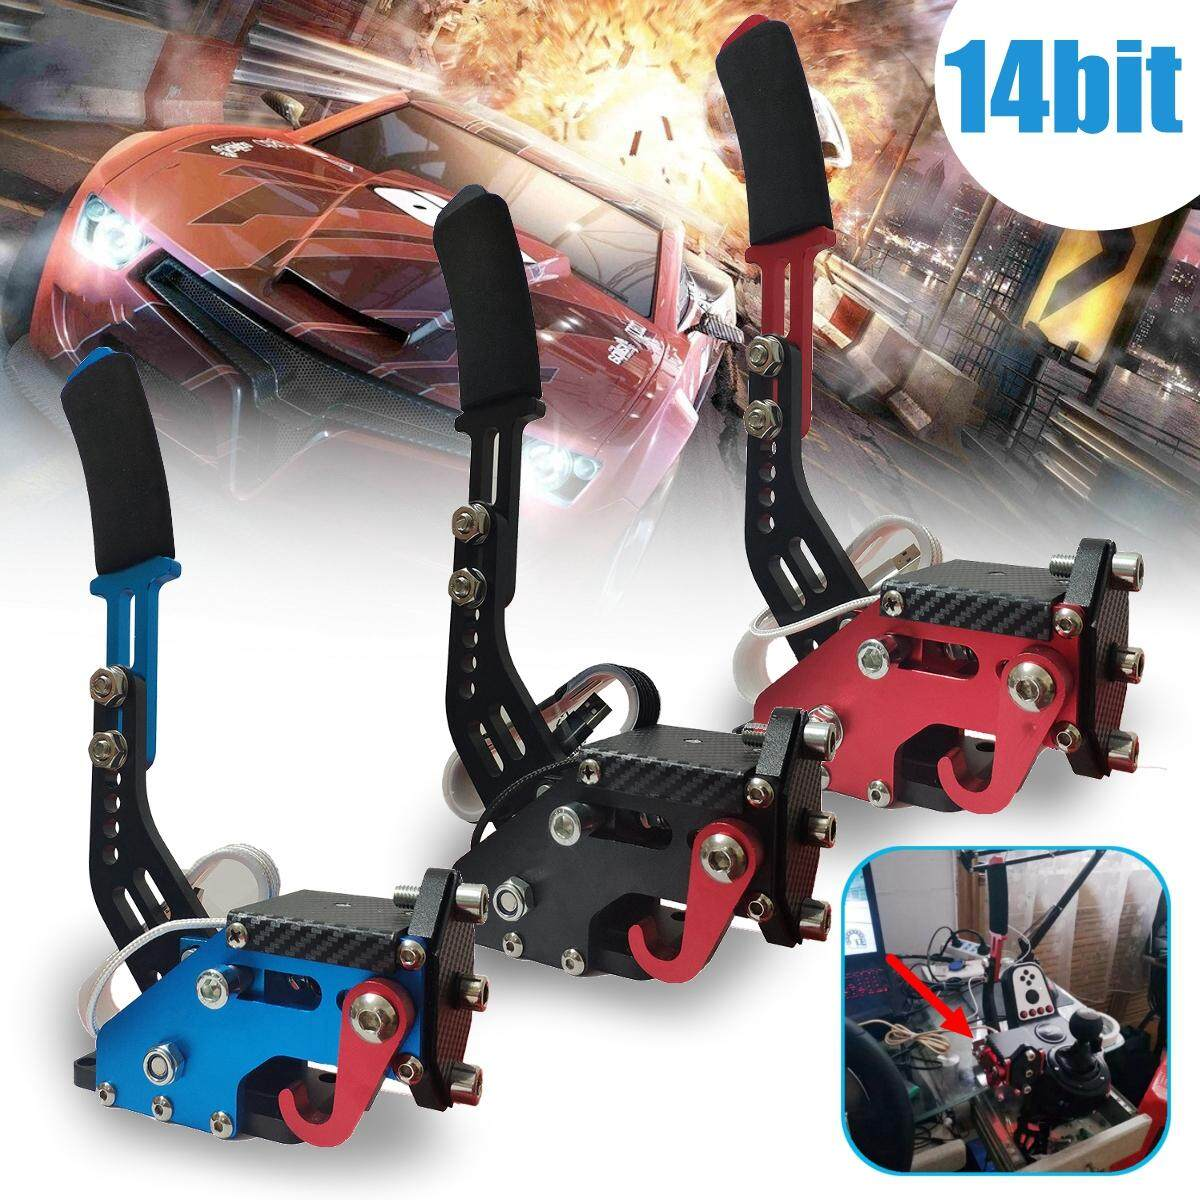 【Free Shipping + Flash Deal】14Bit PC USB Handbrake SIM for Racing Games  G25/27/29 T500 FANATECOSW DIRT RALLY Blue